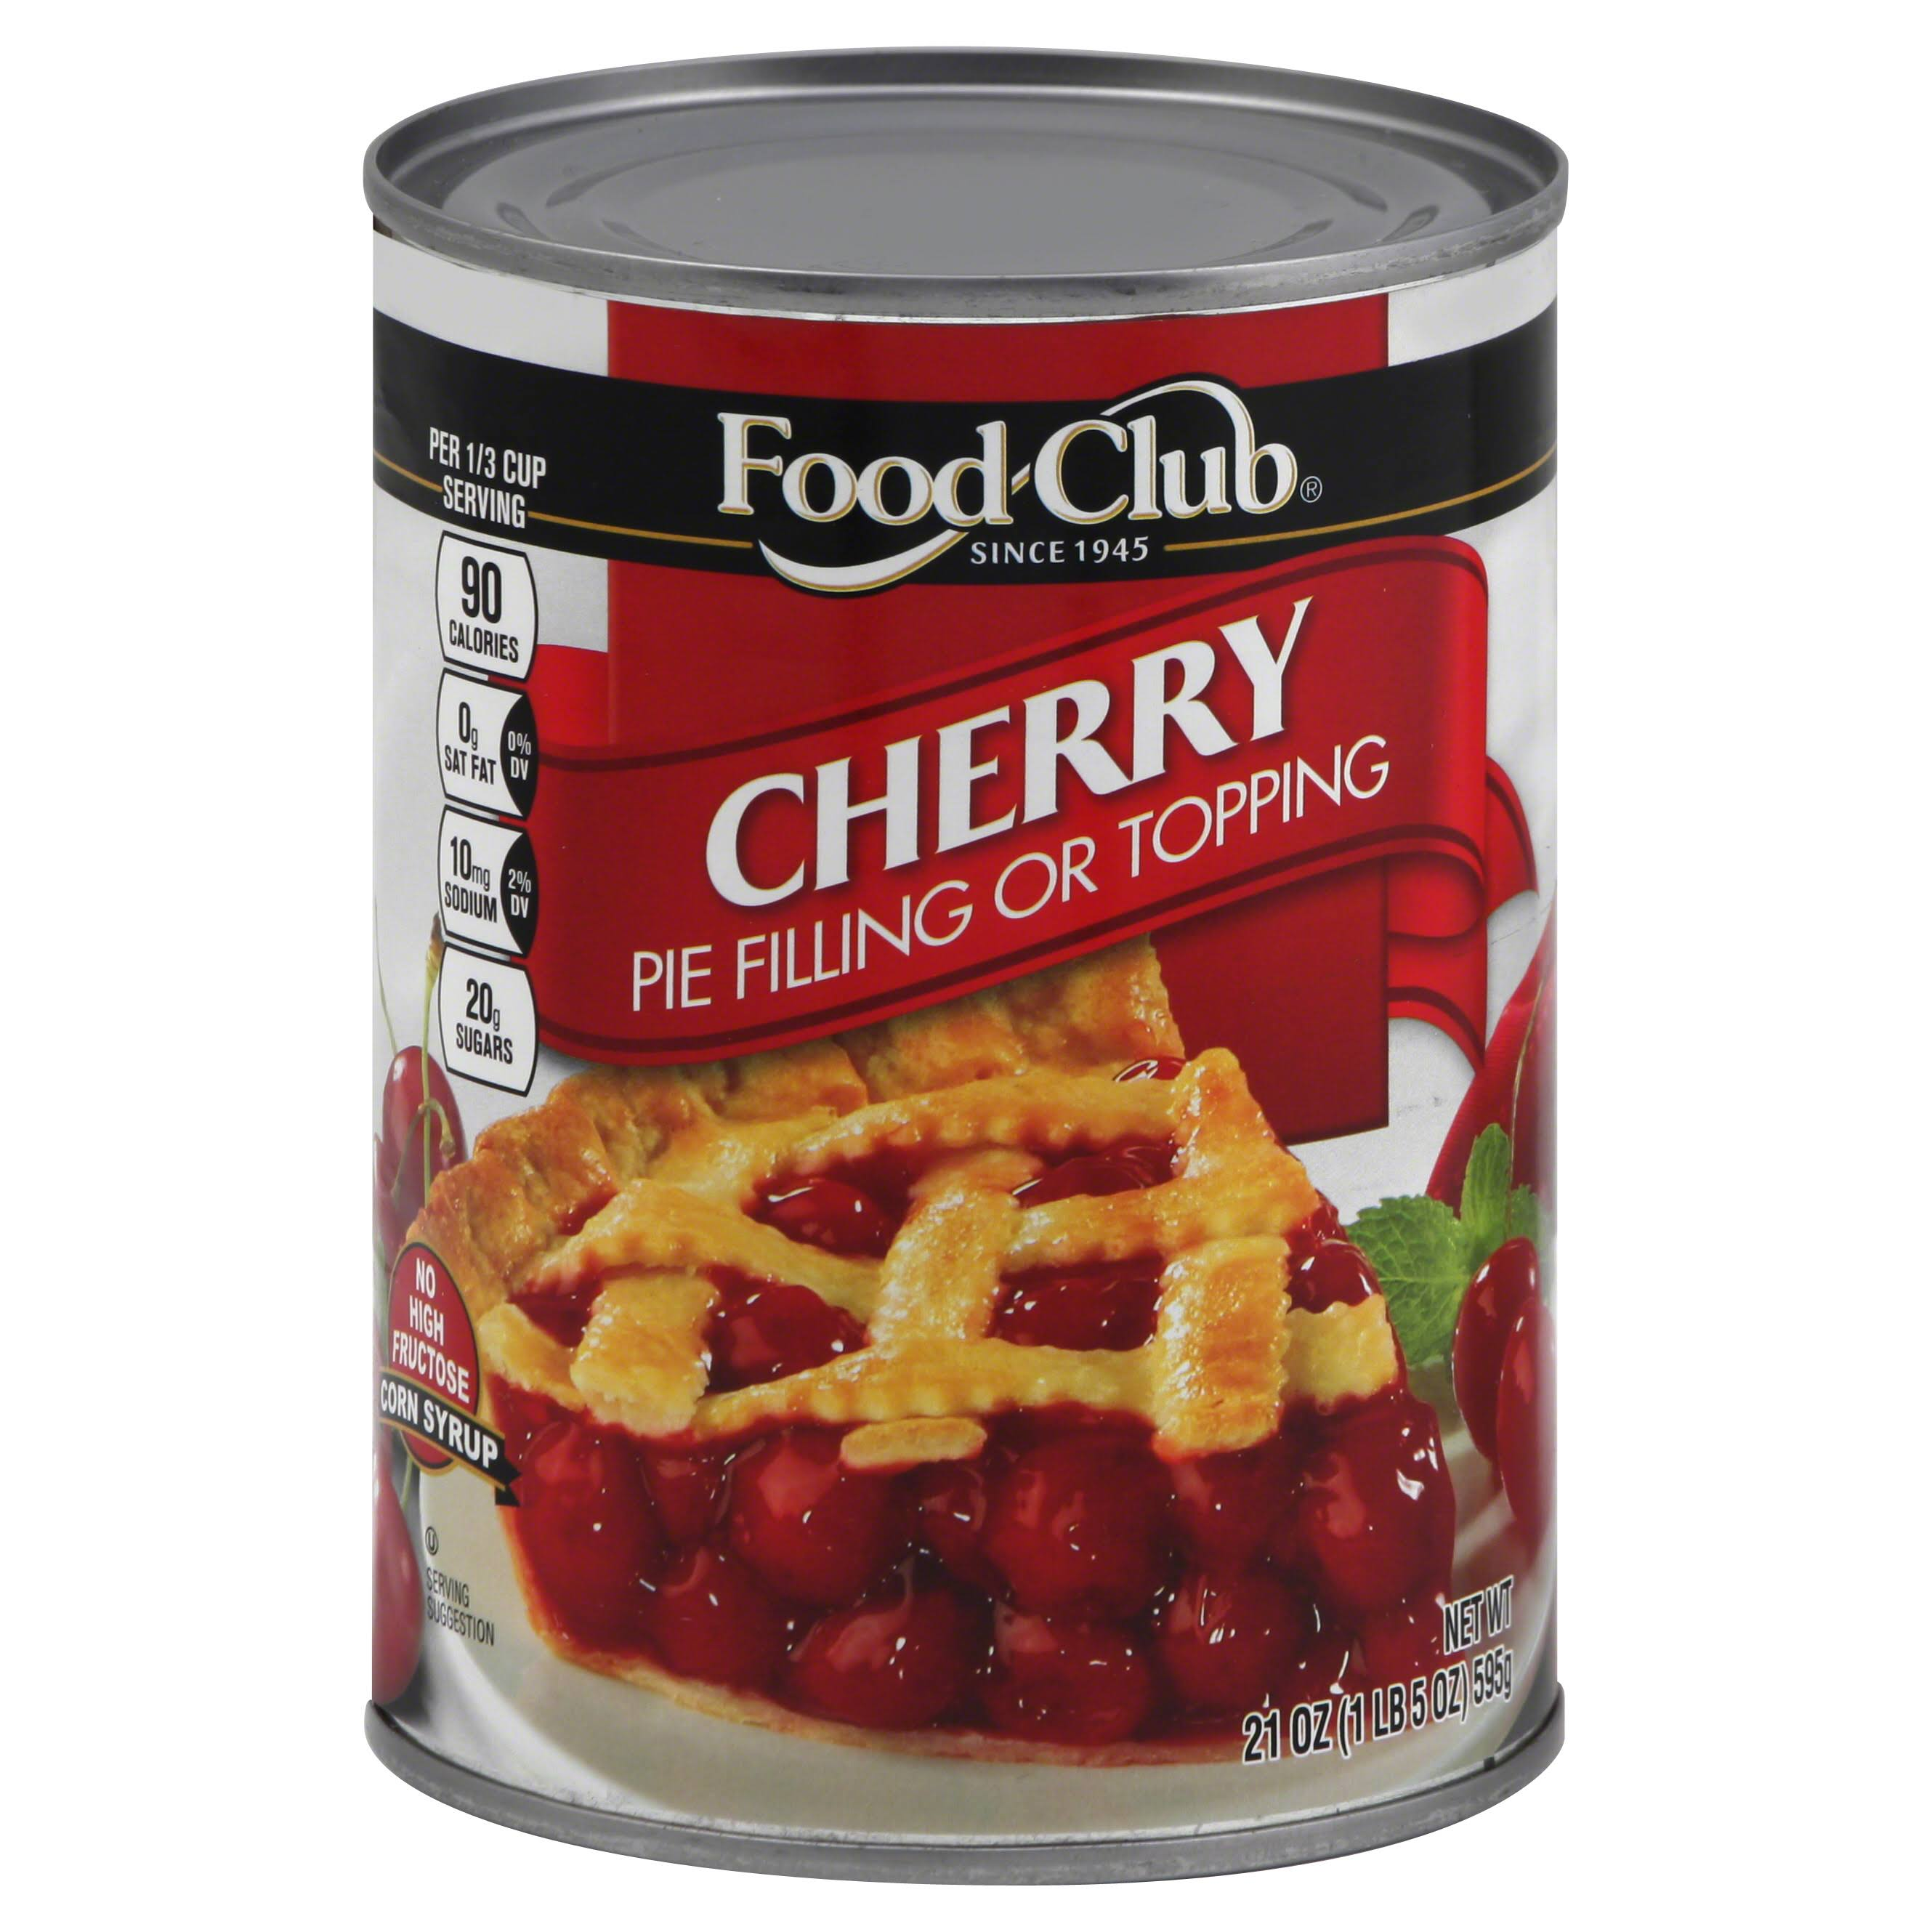 Food Club Pie Filling or Topping, Cherry - 21 oz